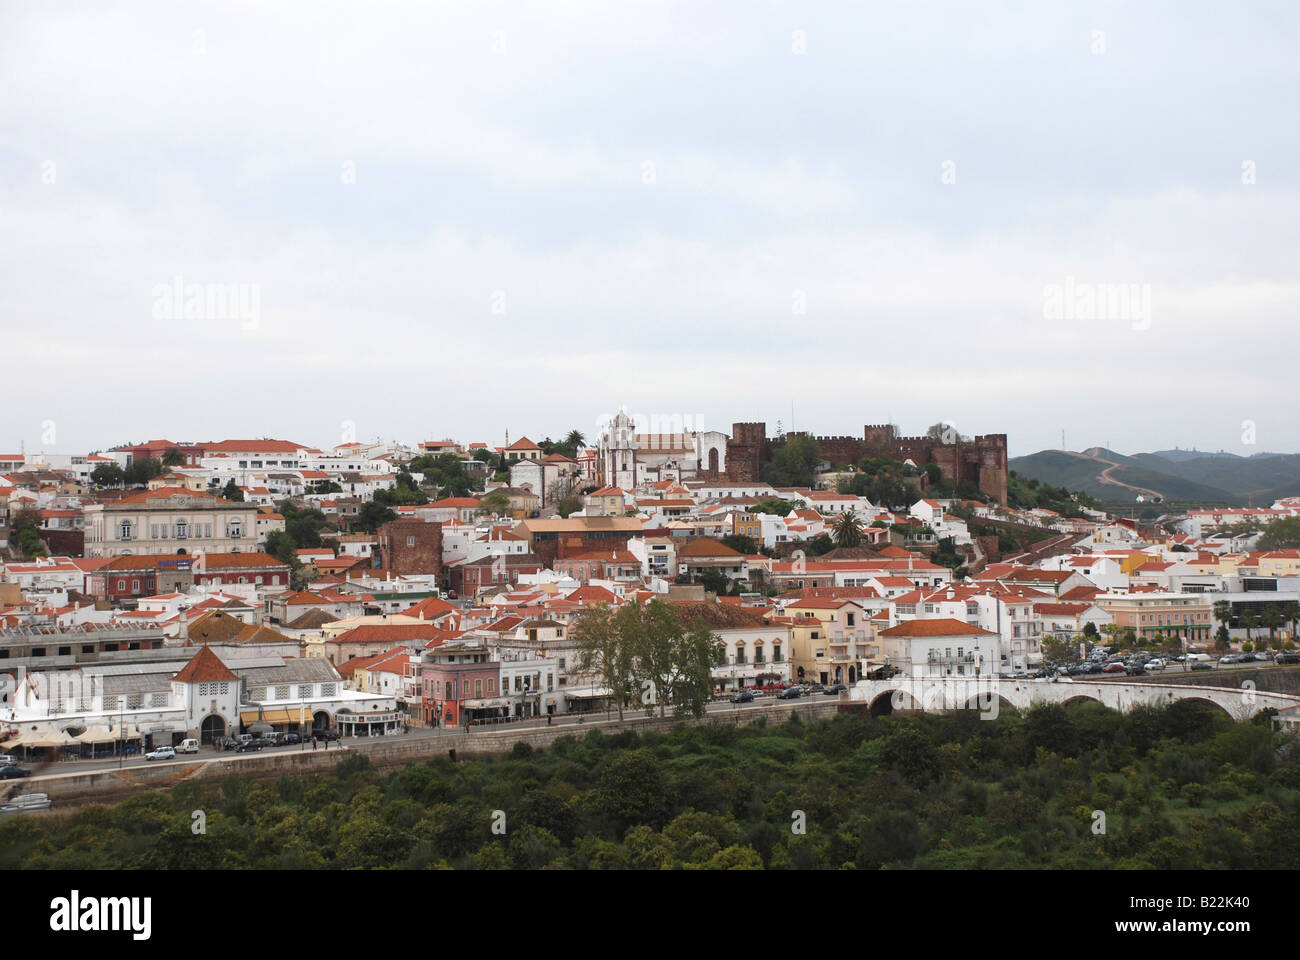 Town and castle of Silves, Algarve, Portugal Stock Photo